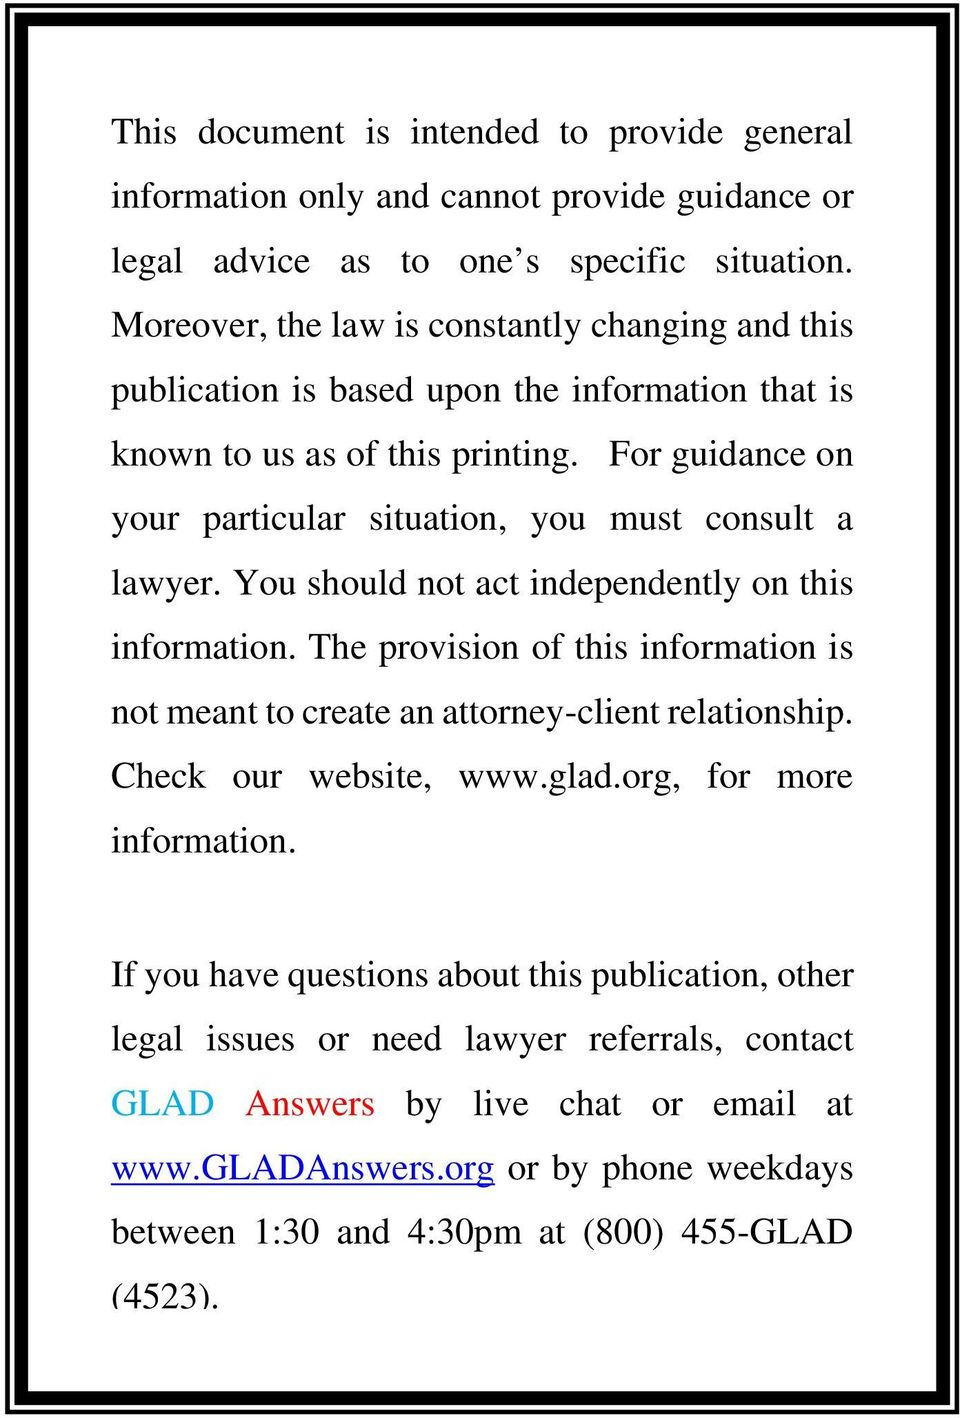 For guidance on your particular situation, you must consult a lawyer. You should not act independently on this information.